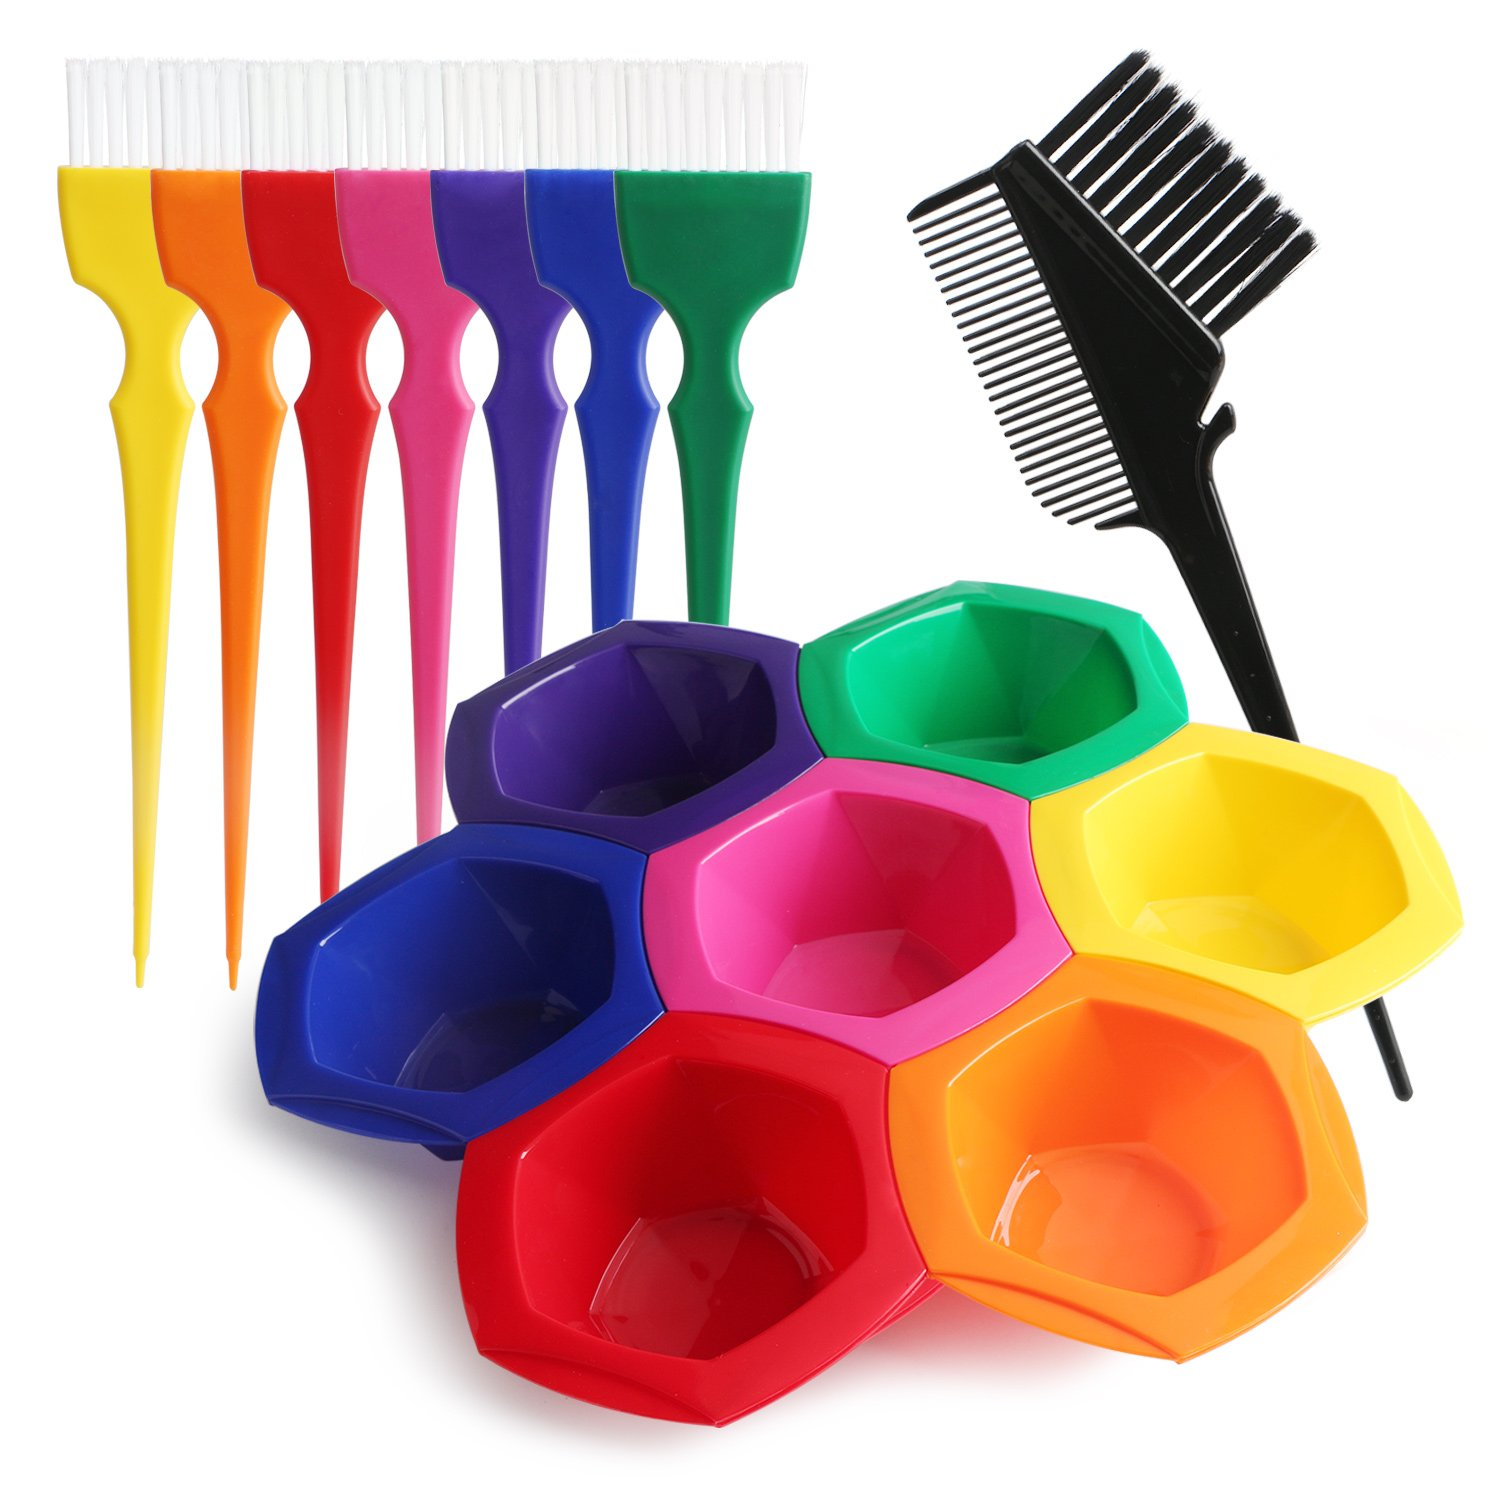 15pcs Hair Color Bowl and Brush Set, Segbeuaty Hair Coloring Highlighting Tools on Hair Dye, Rainbow Hair Color Mixing Bowls Brushes Comb for Dyed Hair, Omber Hair Dye or Art Paint Palatte by Segbeauty